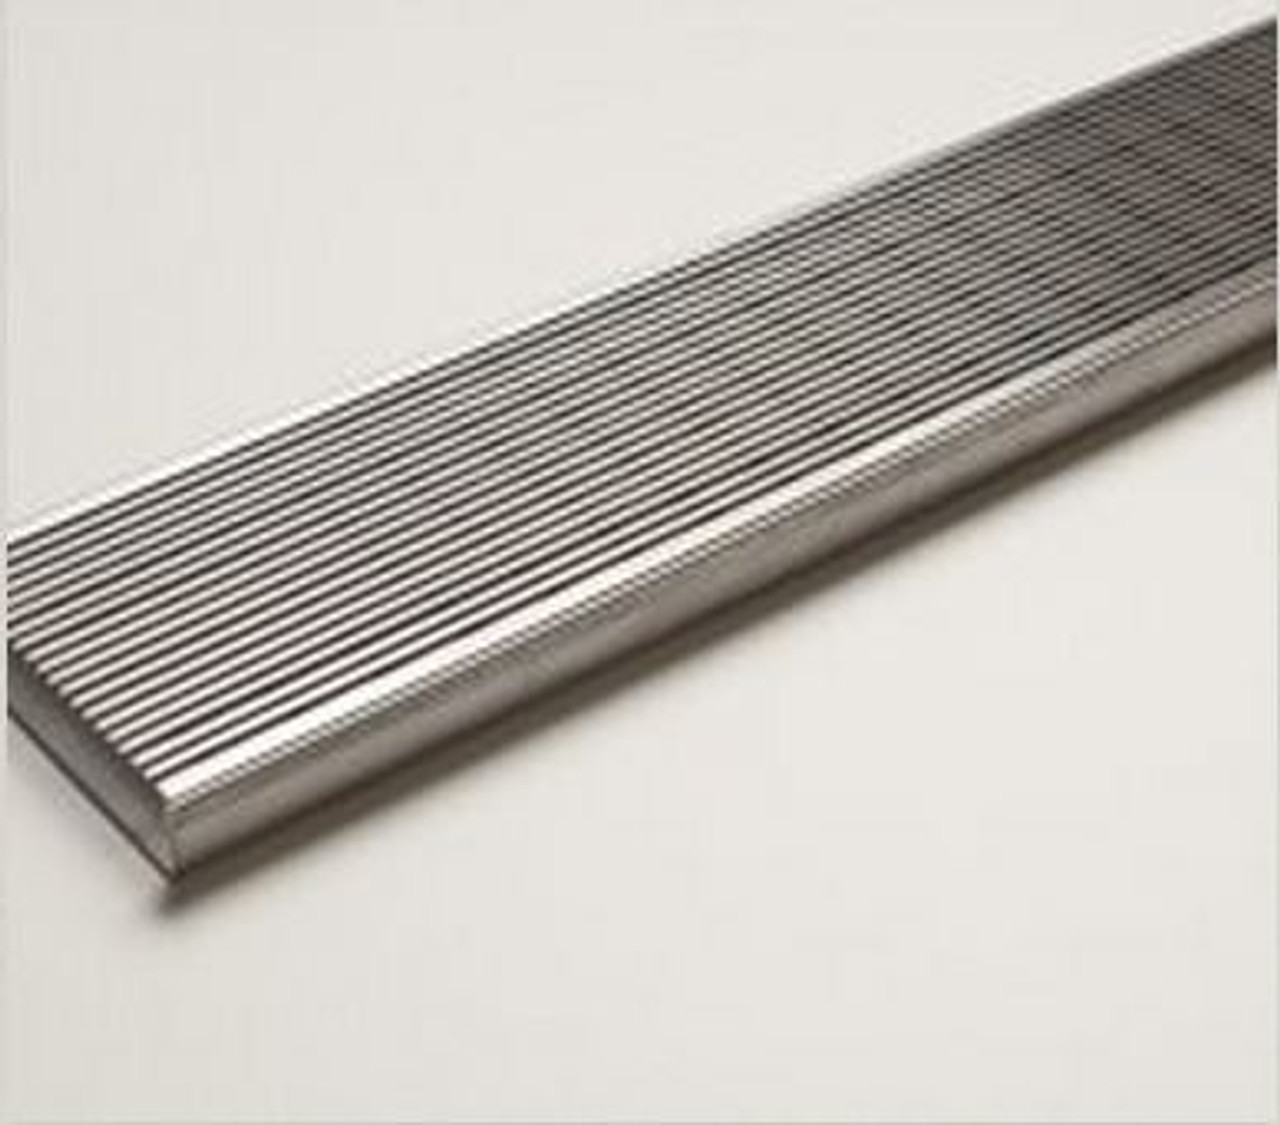 100ARIC20-900 Stormtech Stainless Steel Grate